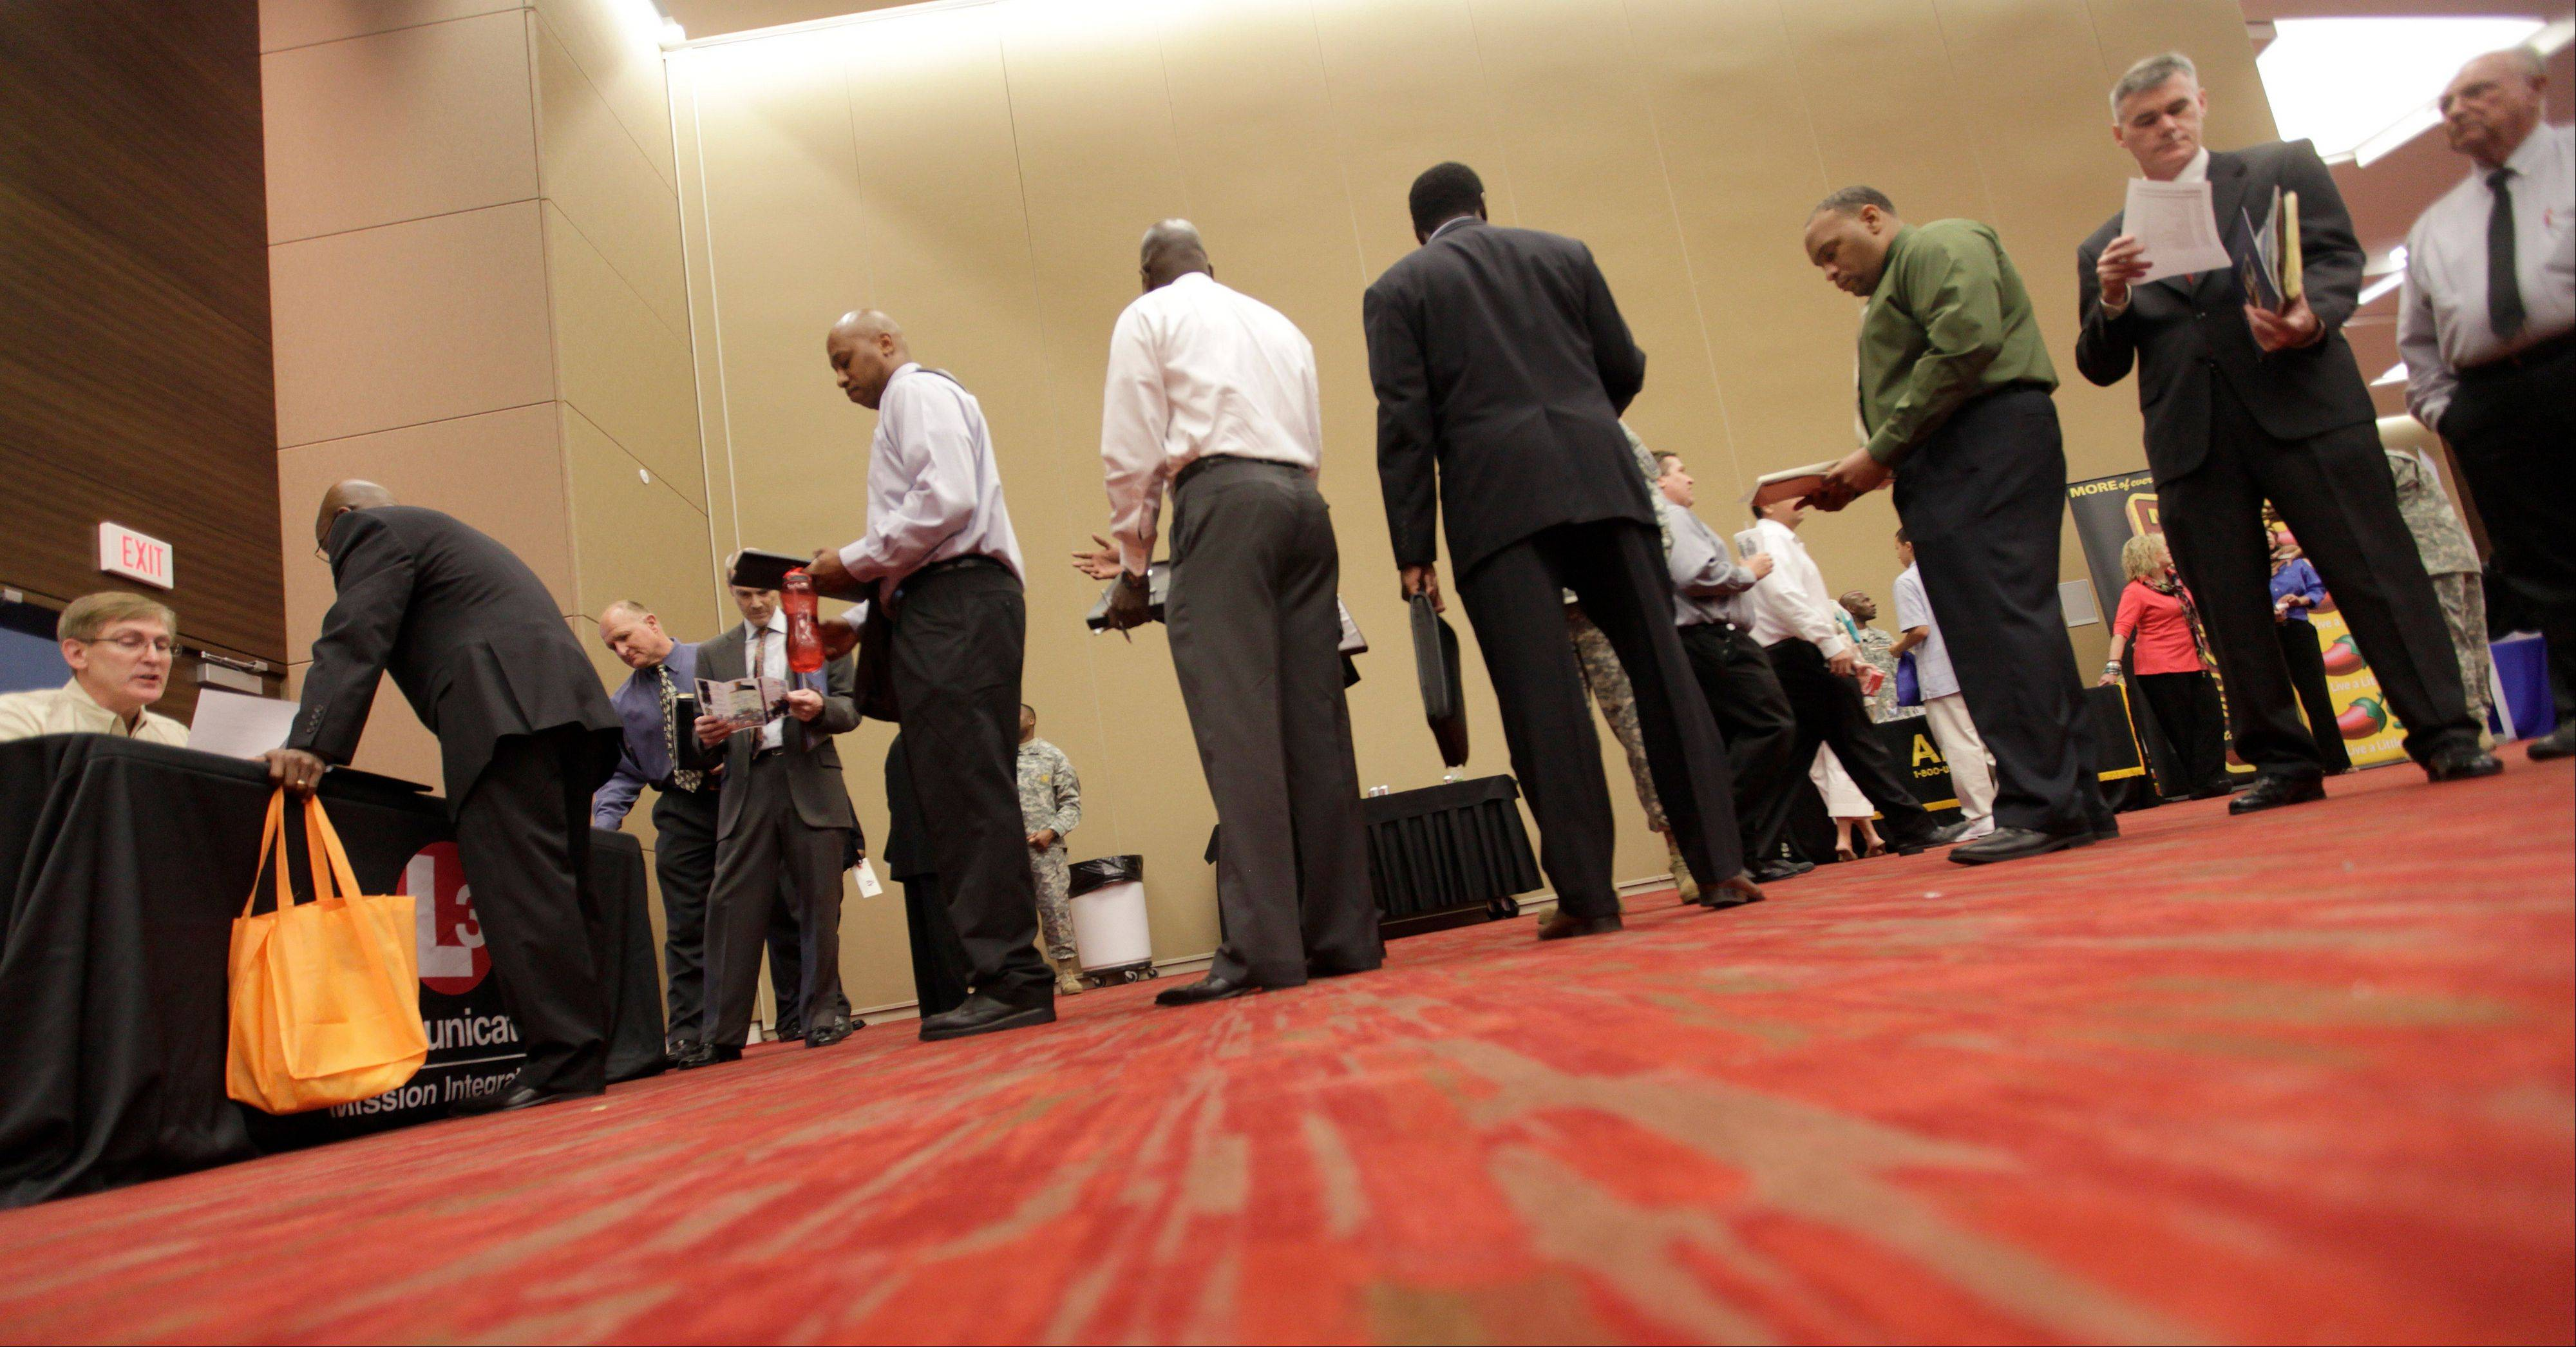 Job seekers line up to speak to a recruiter during a job fair in Irving, Texas.